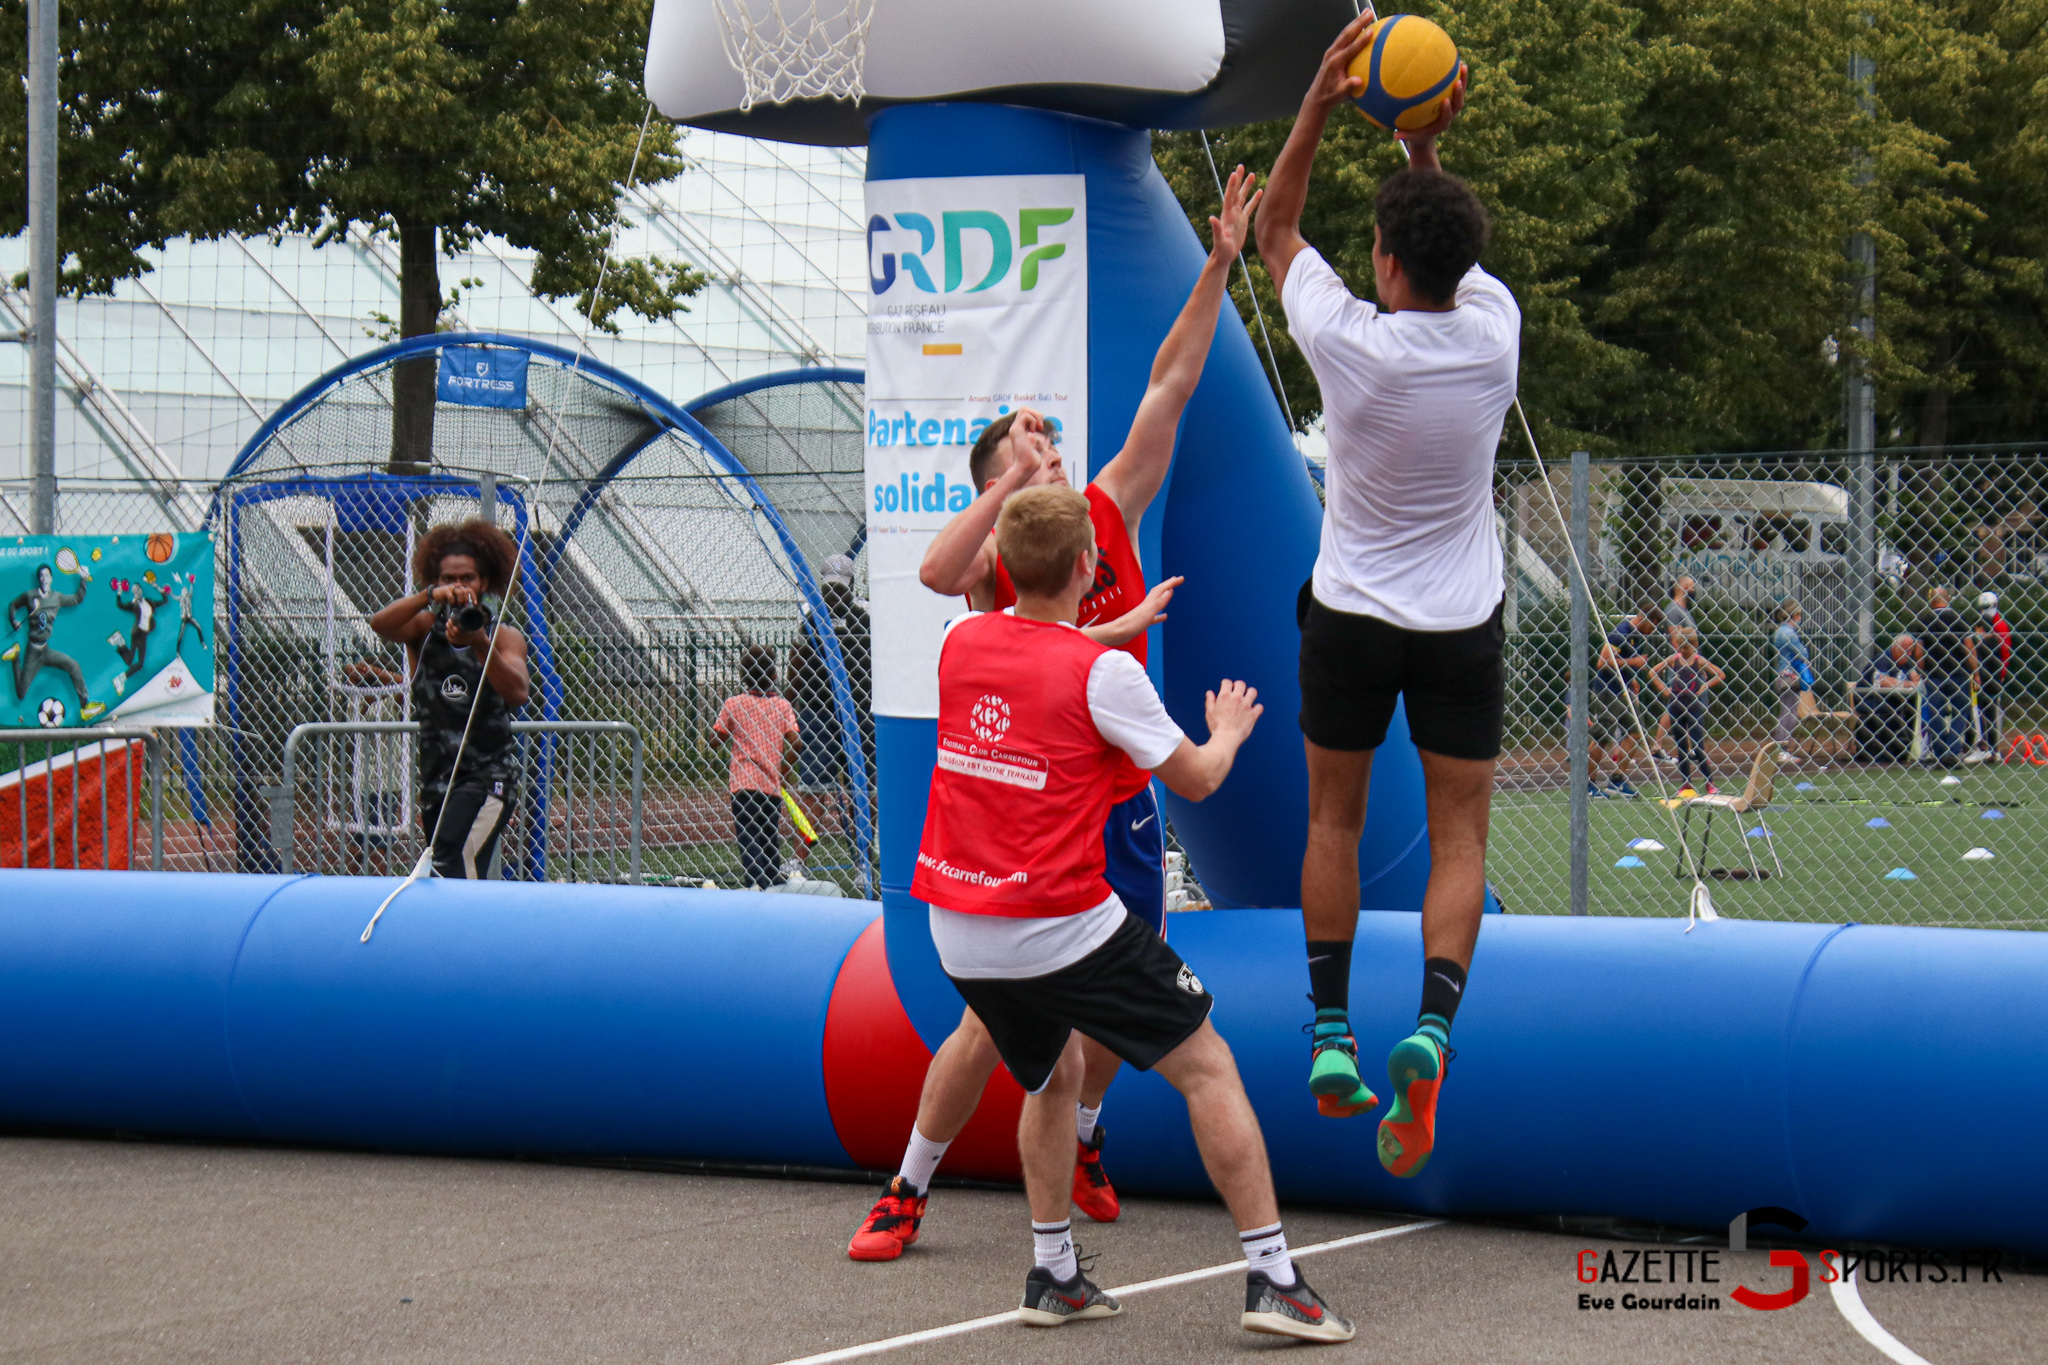 amiensgrdf basketball tour finale coliseumimg 2129